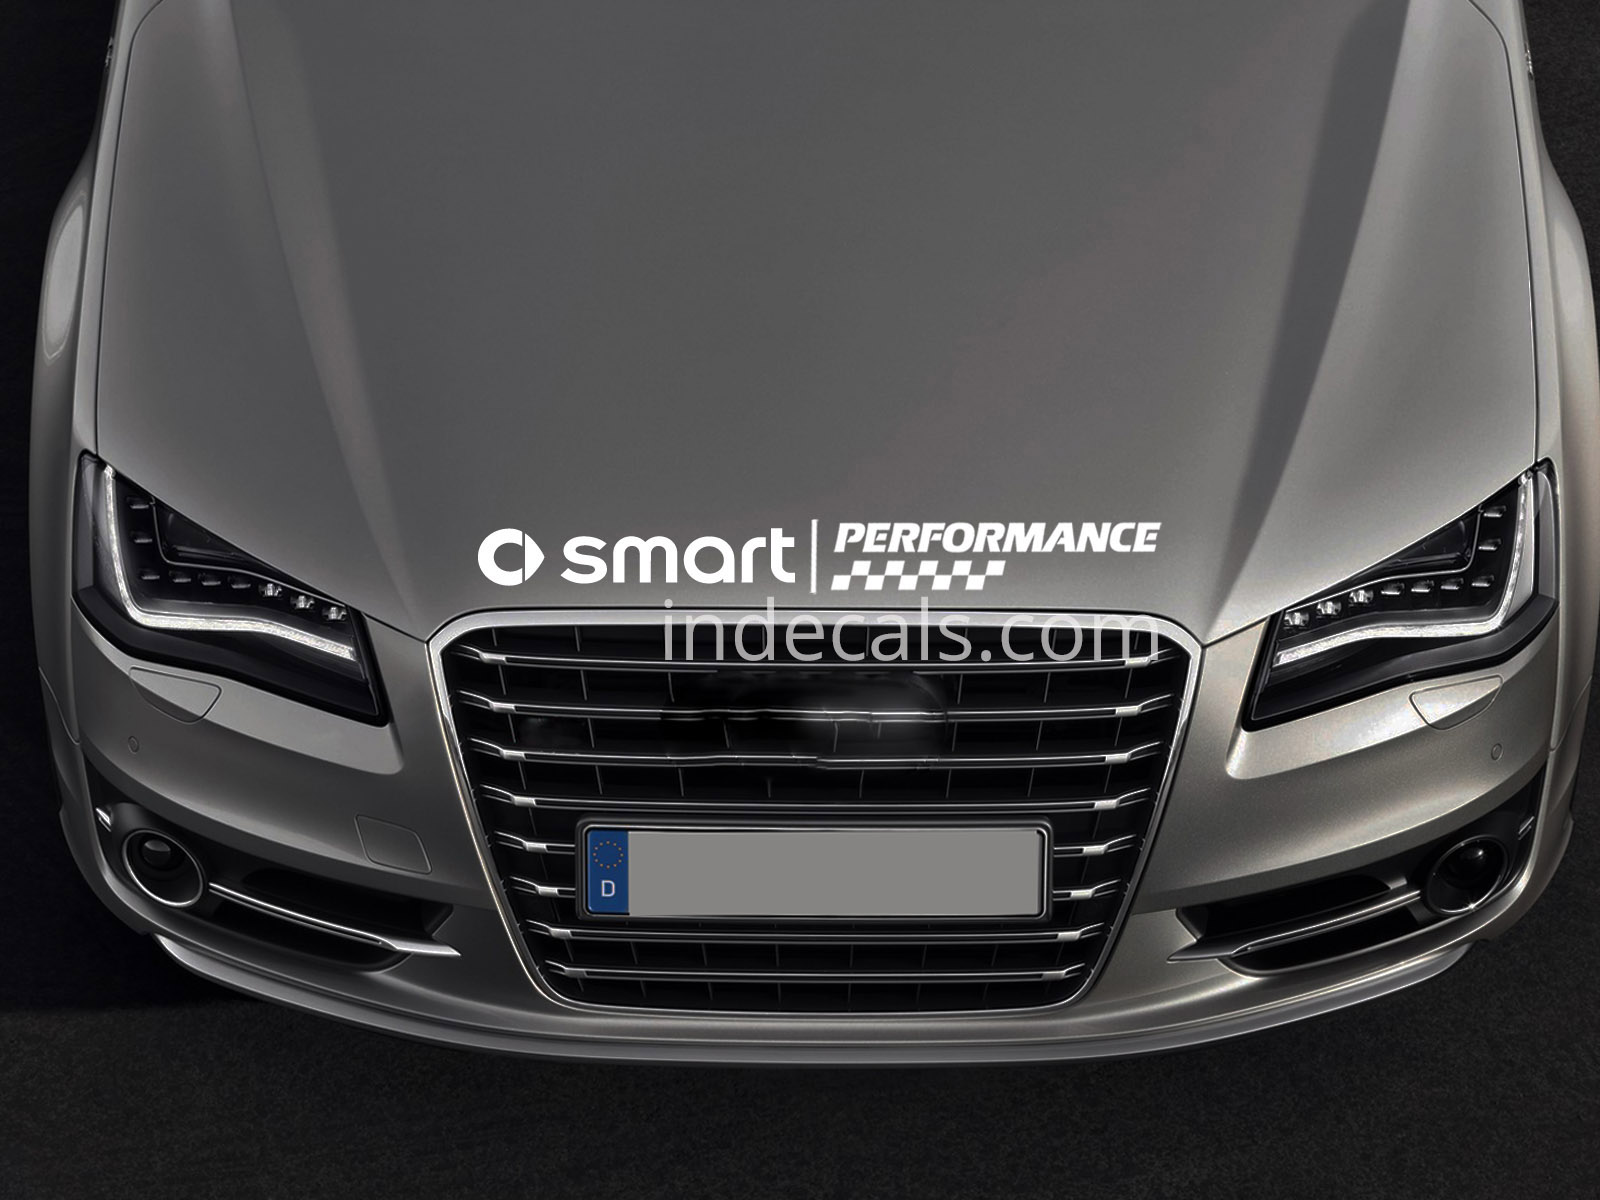 1 x Smart Peformance Sticker for Bonnet - White